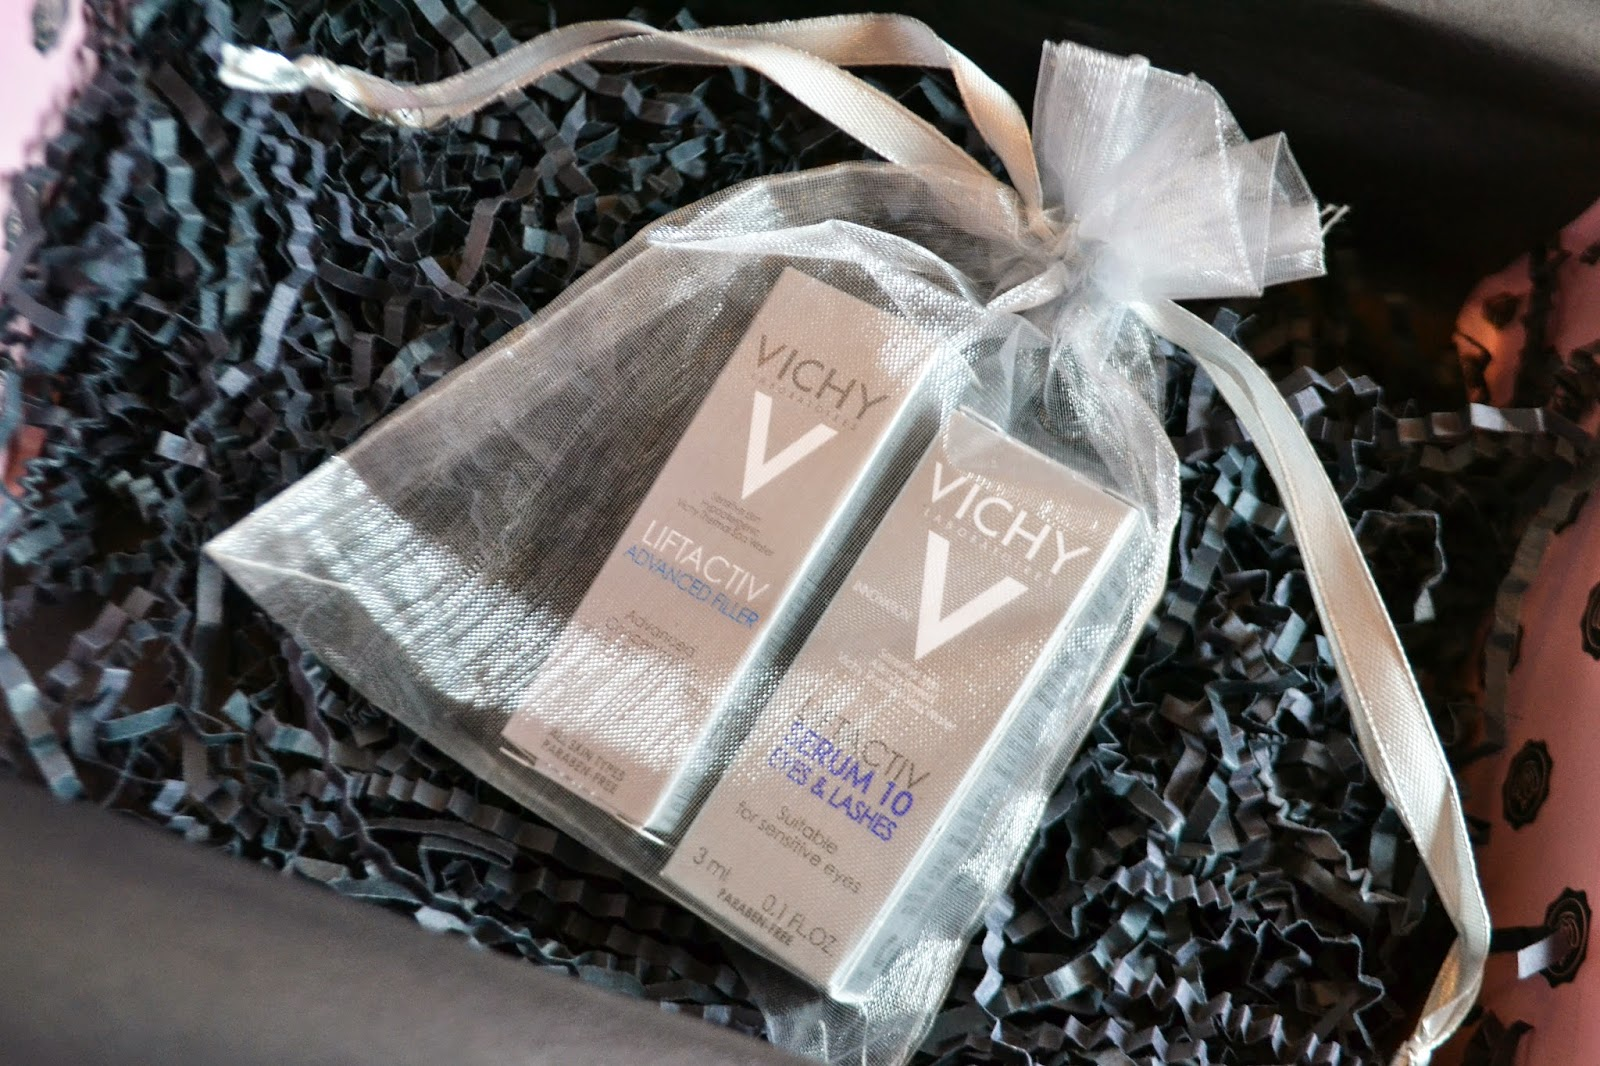 the 2 small boxy of Vichy filler are enclosed in a mostly clear pouch